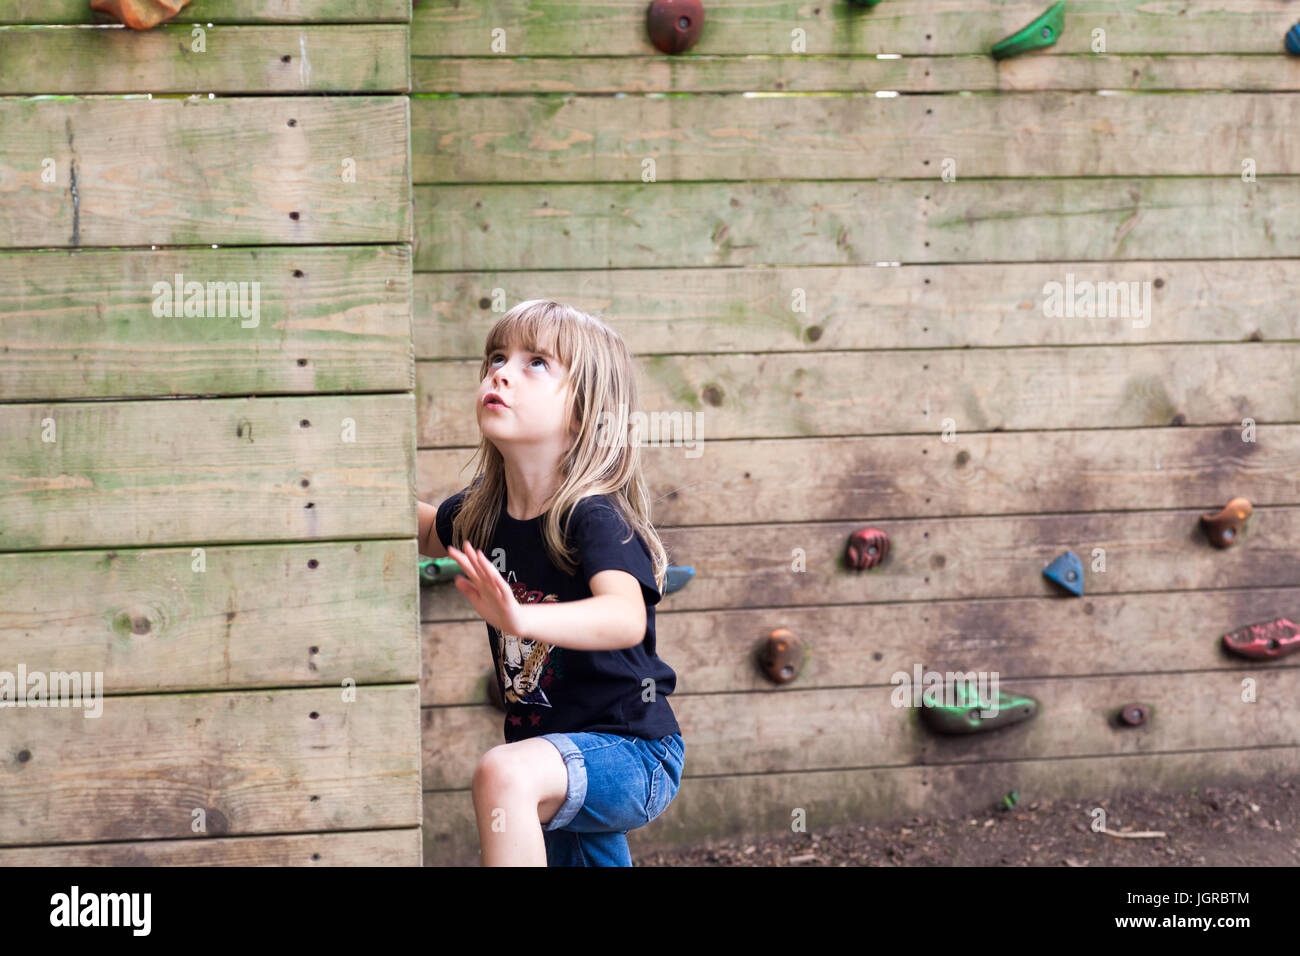 Little girl starting to climb up a wooden climbing wall. Cute child with physical active lifestyle outdoors - Stock Image